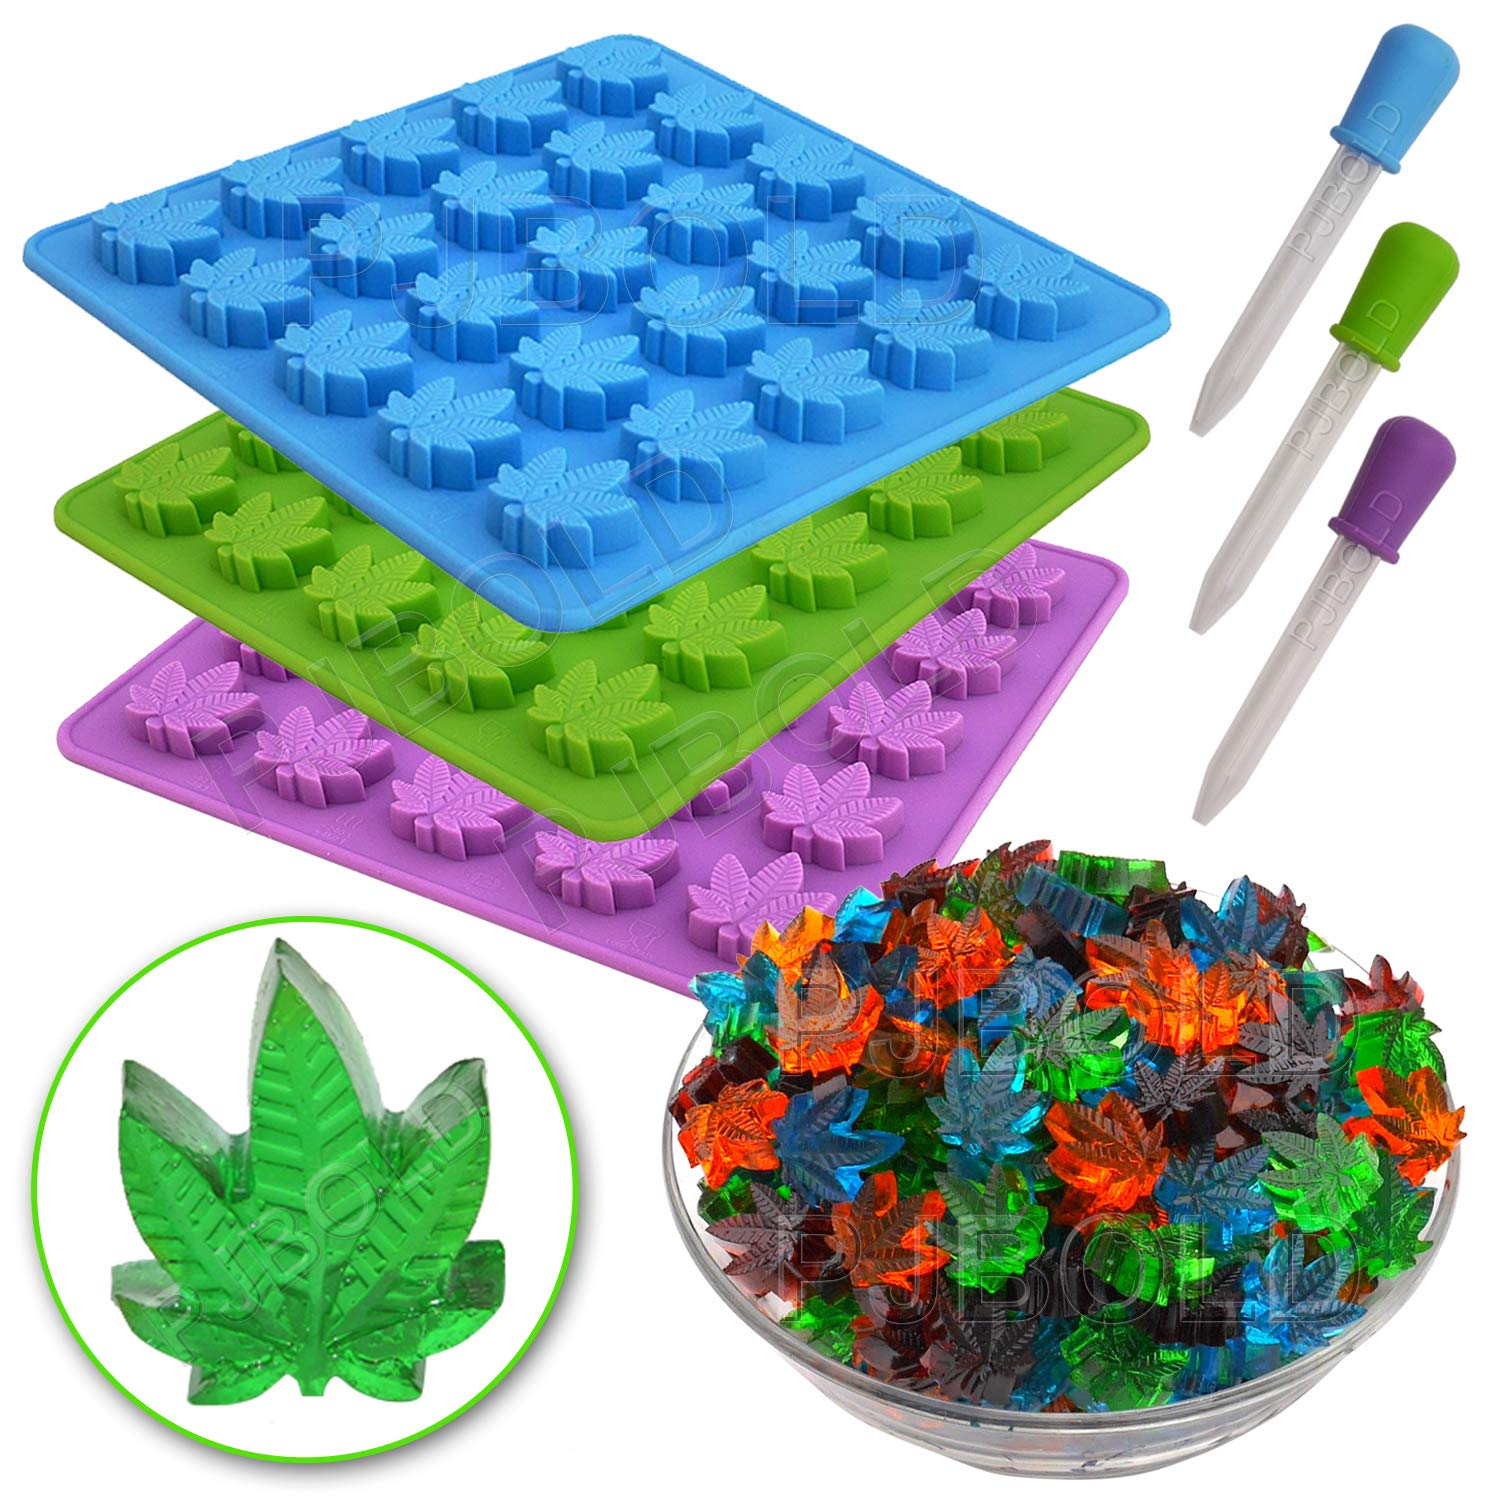 Gummy Leaf Silicone Candy Mold Party Novelty Gift - 3 Pack by PJ Bold (Image #6)